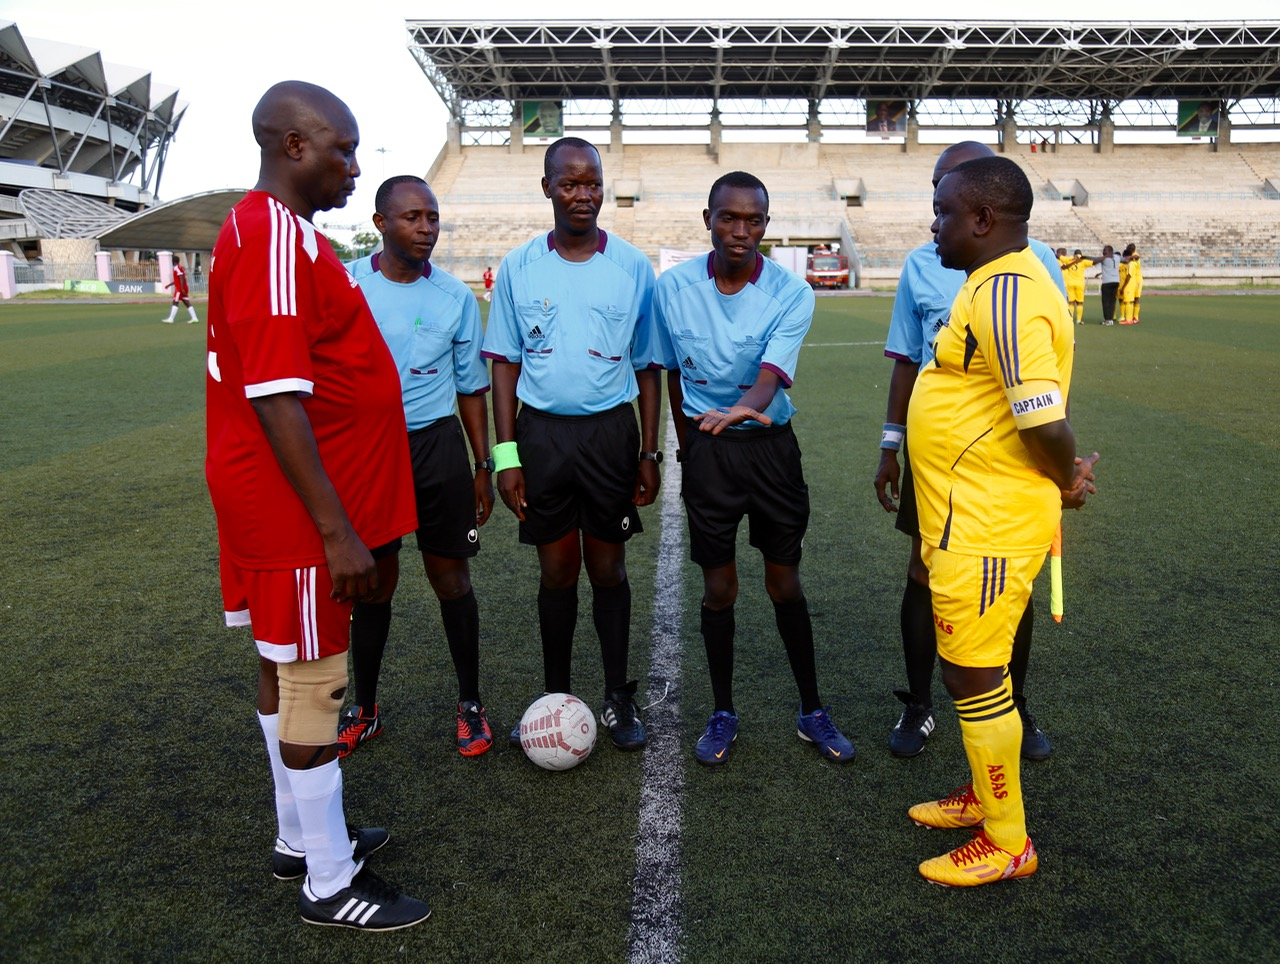 EALA Captain, Kenneth Madete (left) and the Captain of the Bunge Sports Club, Tanzania, Hon Gibson Ole Meseyiek look on as the referee tosses a coin at the start of the match.  EALA beat Parliament of Tanzania 6-0 in an entertaining match